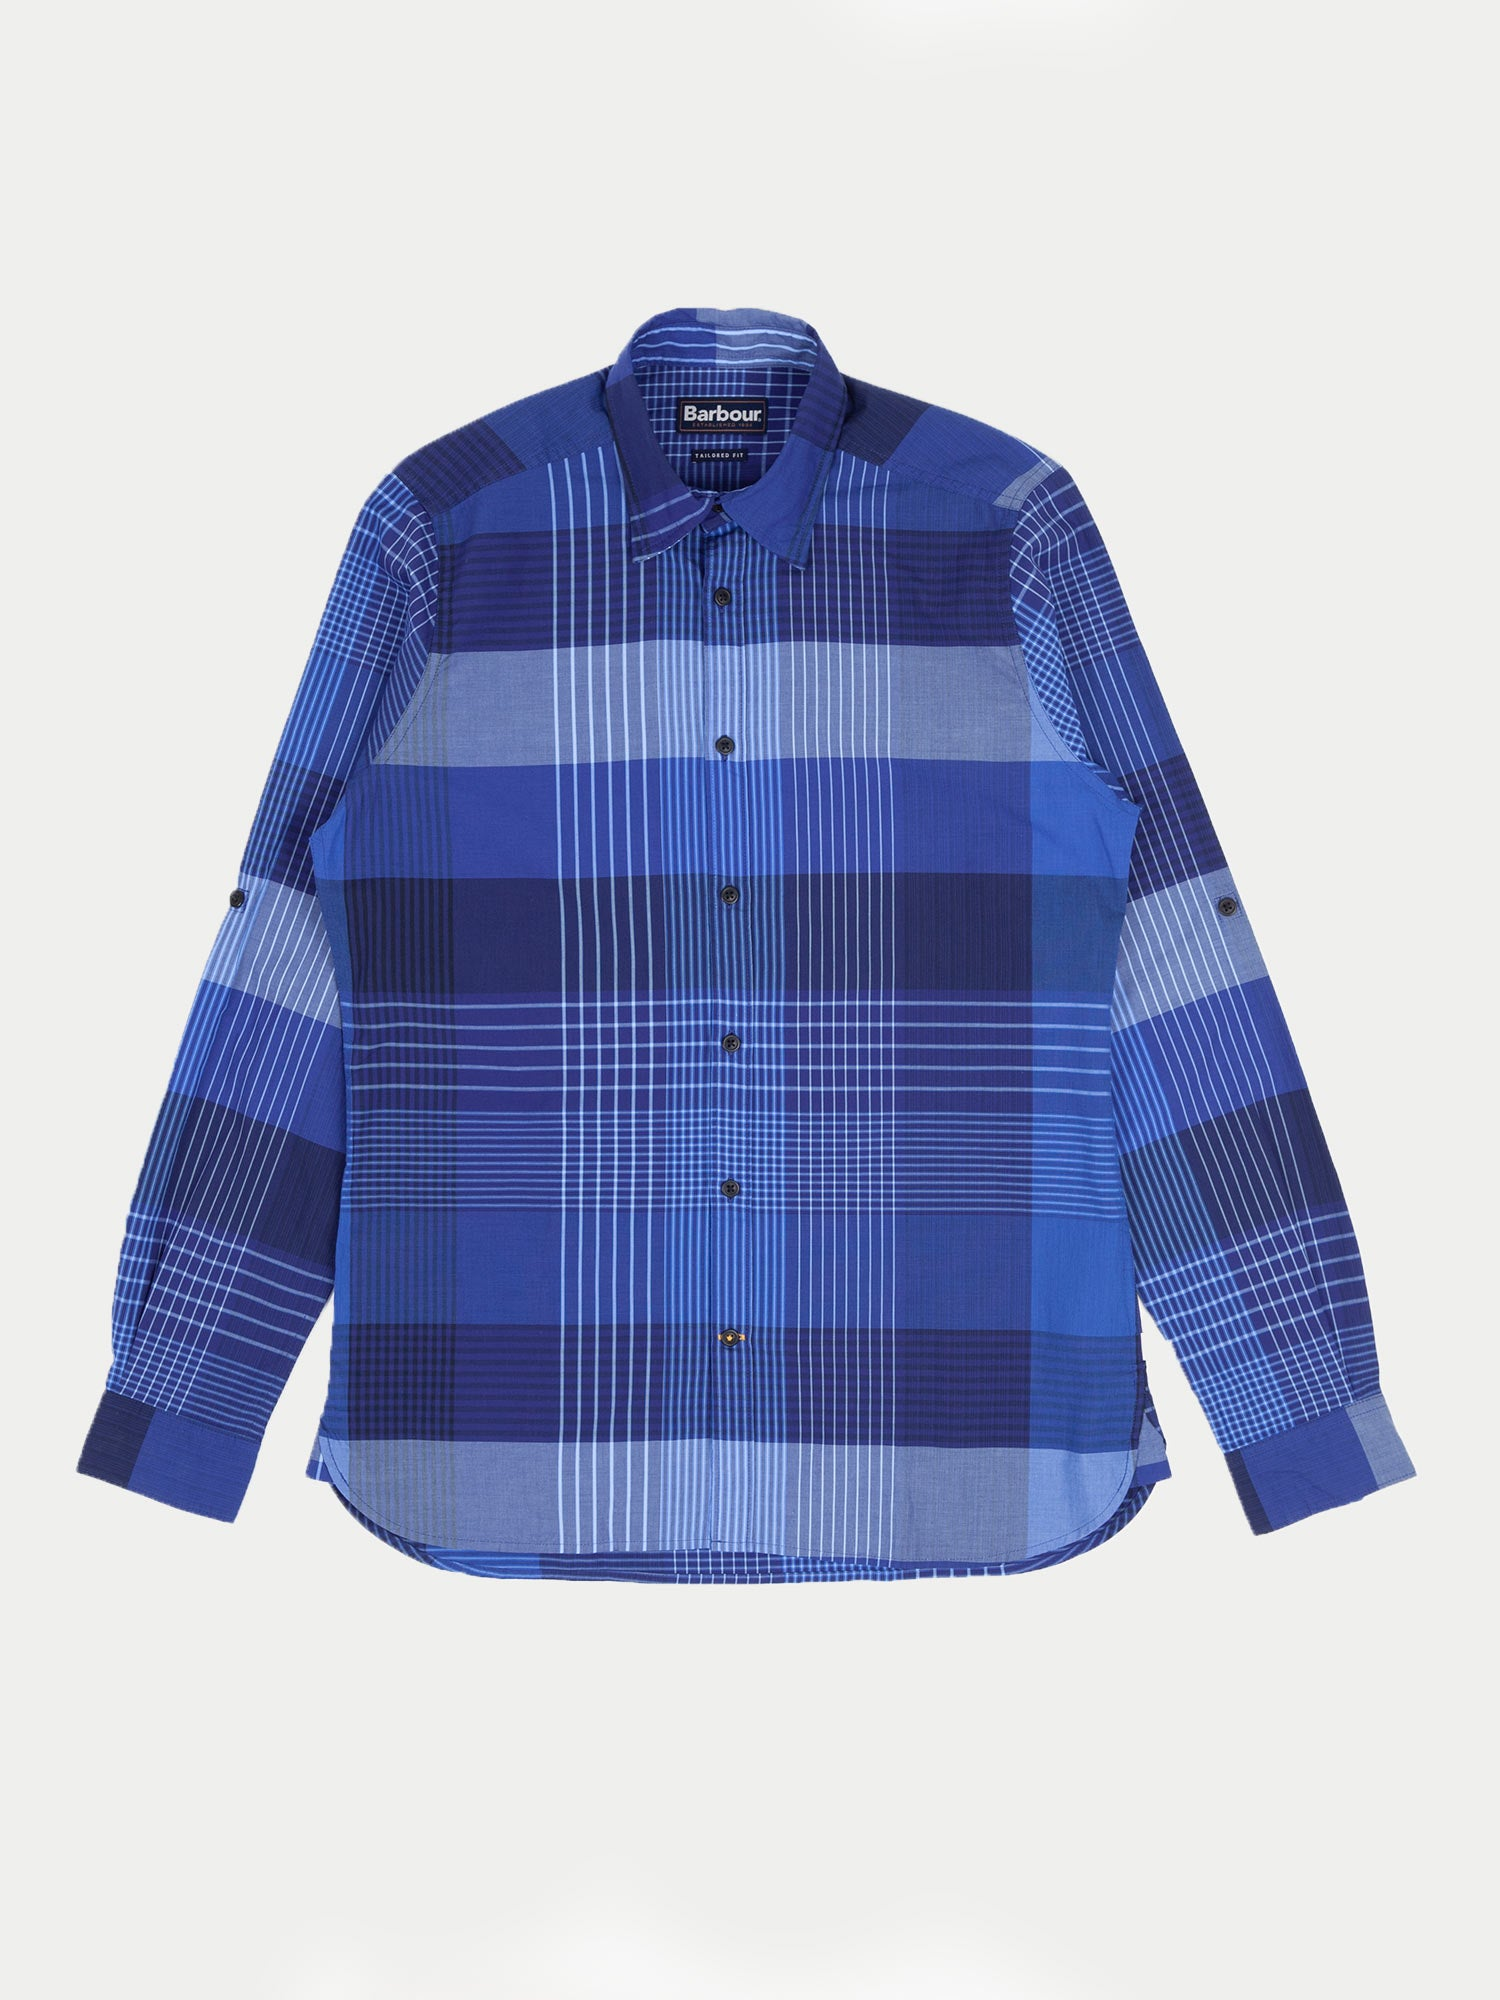 Barbour Stern Shirt (Inky Blue)